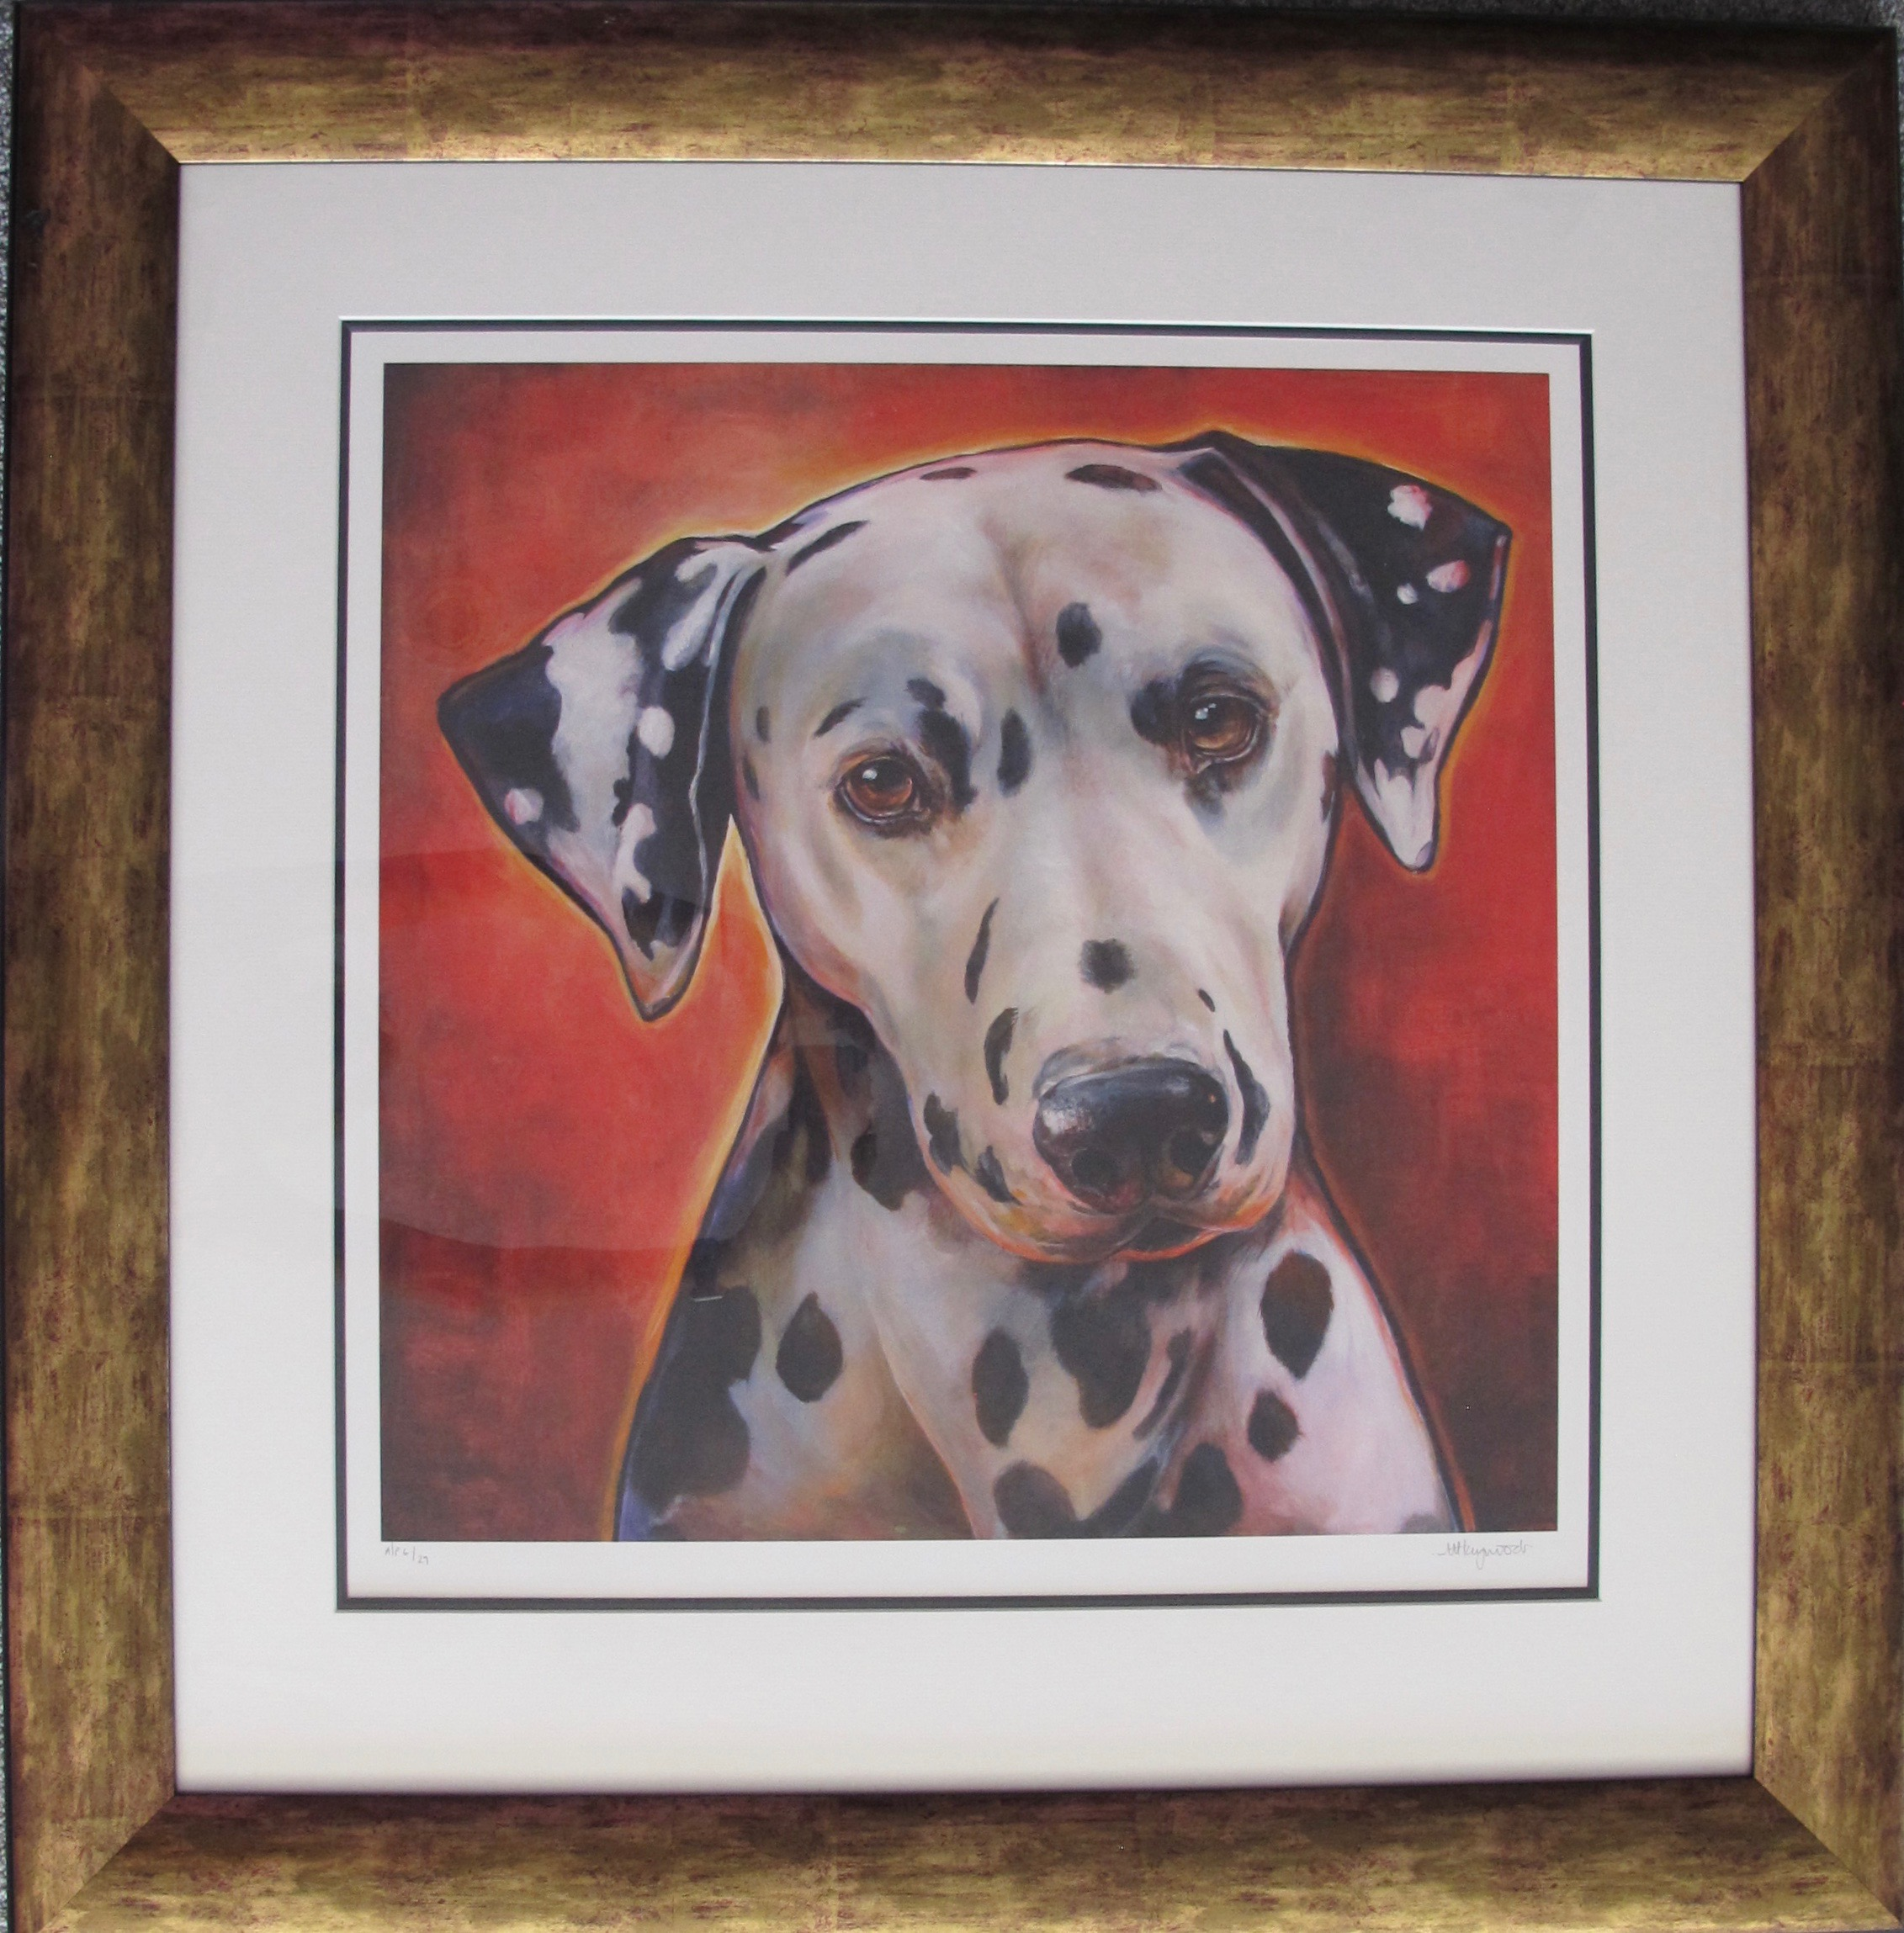 MANDIE HAYWOOD MISS SCARLET Hand Signed Framed Ltd Edition Giclee Dalmation Art